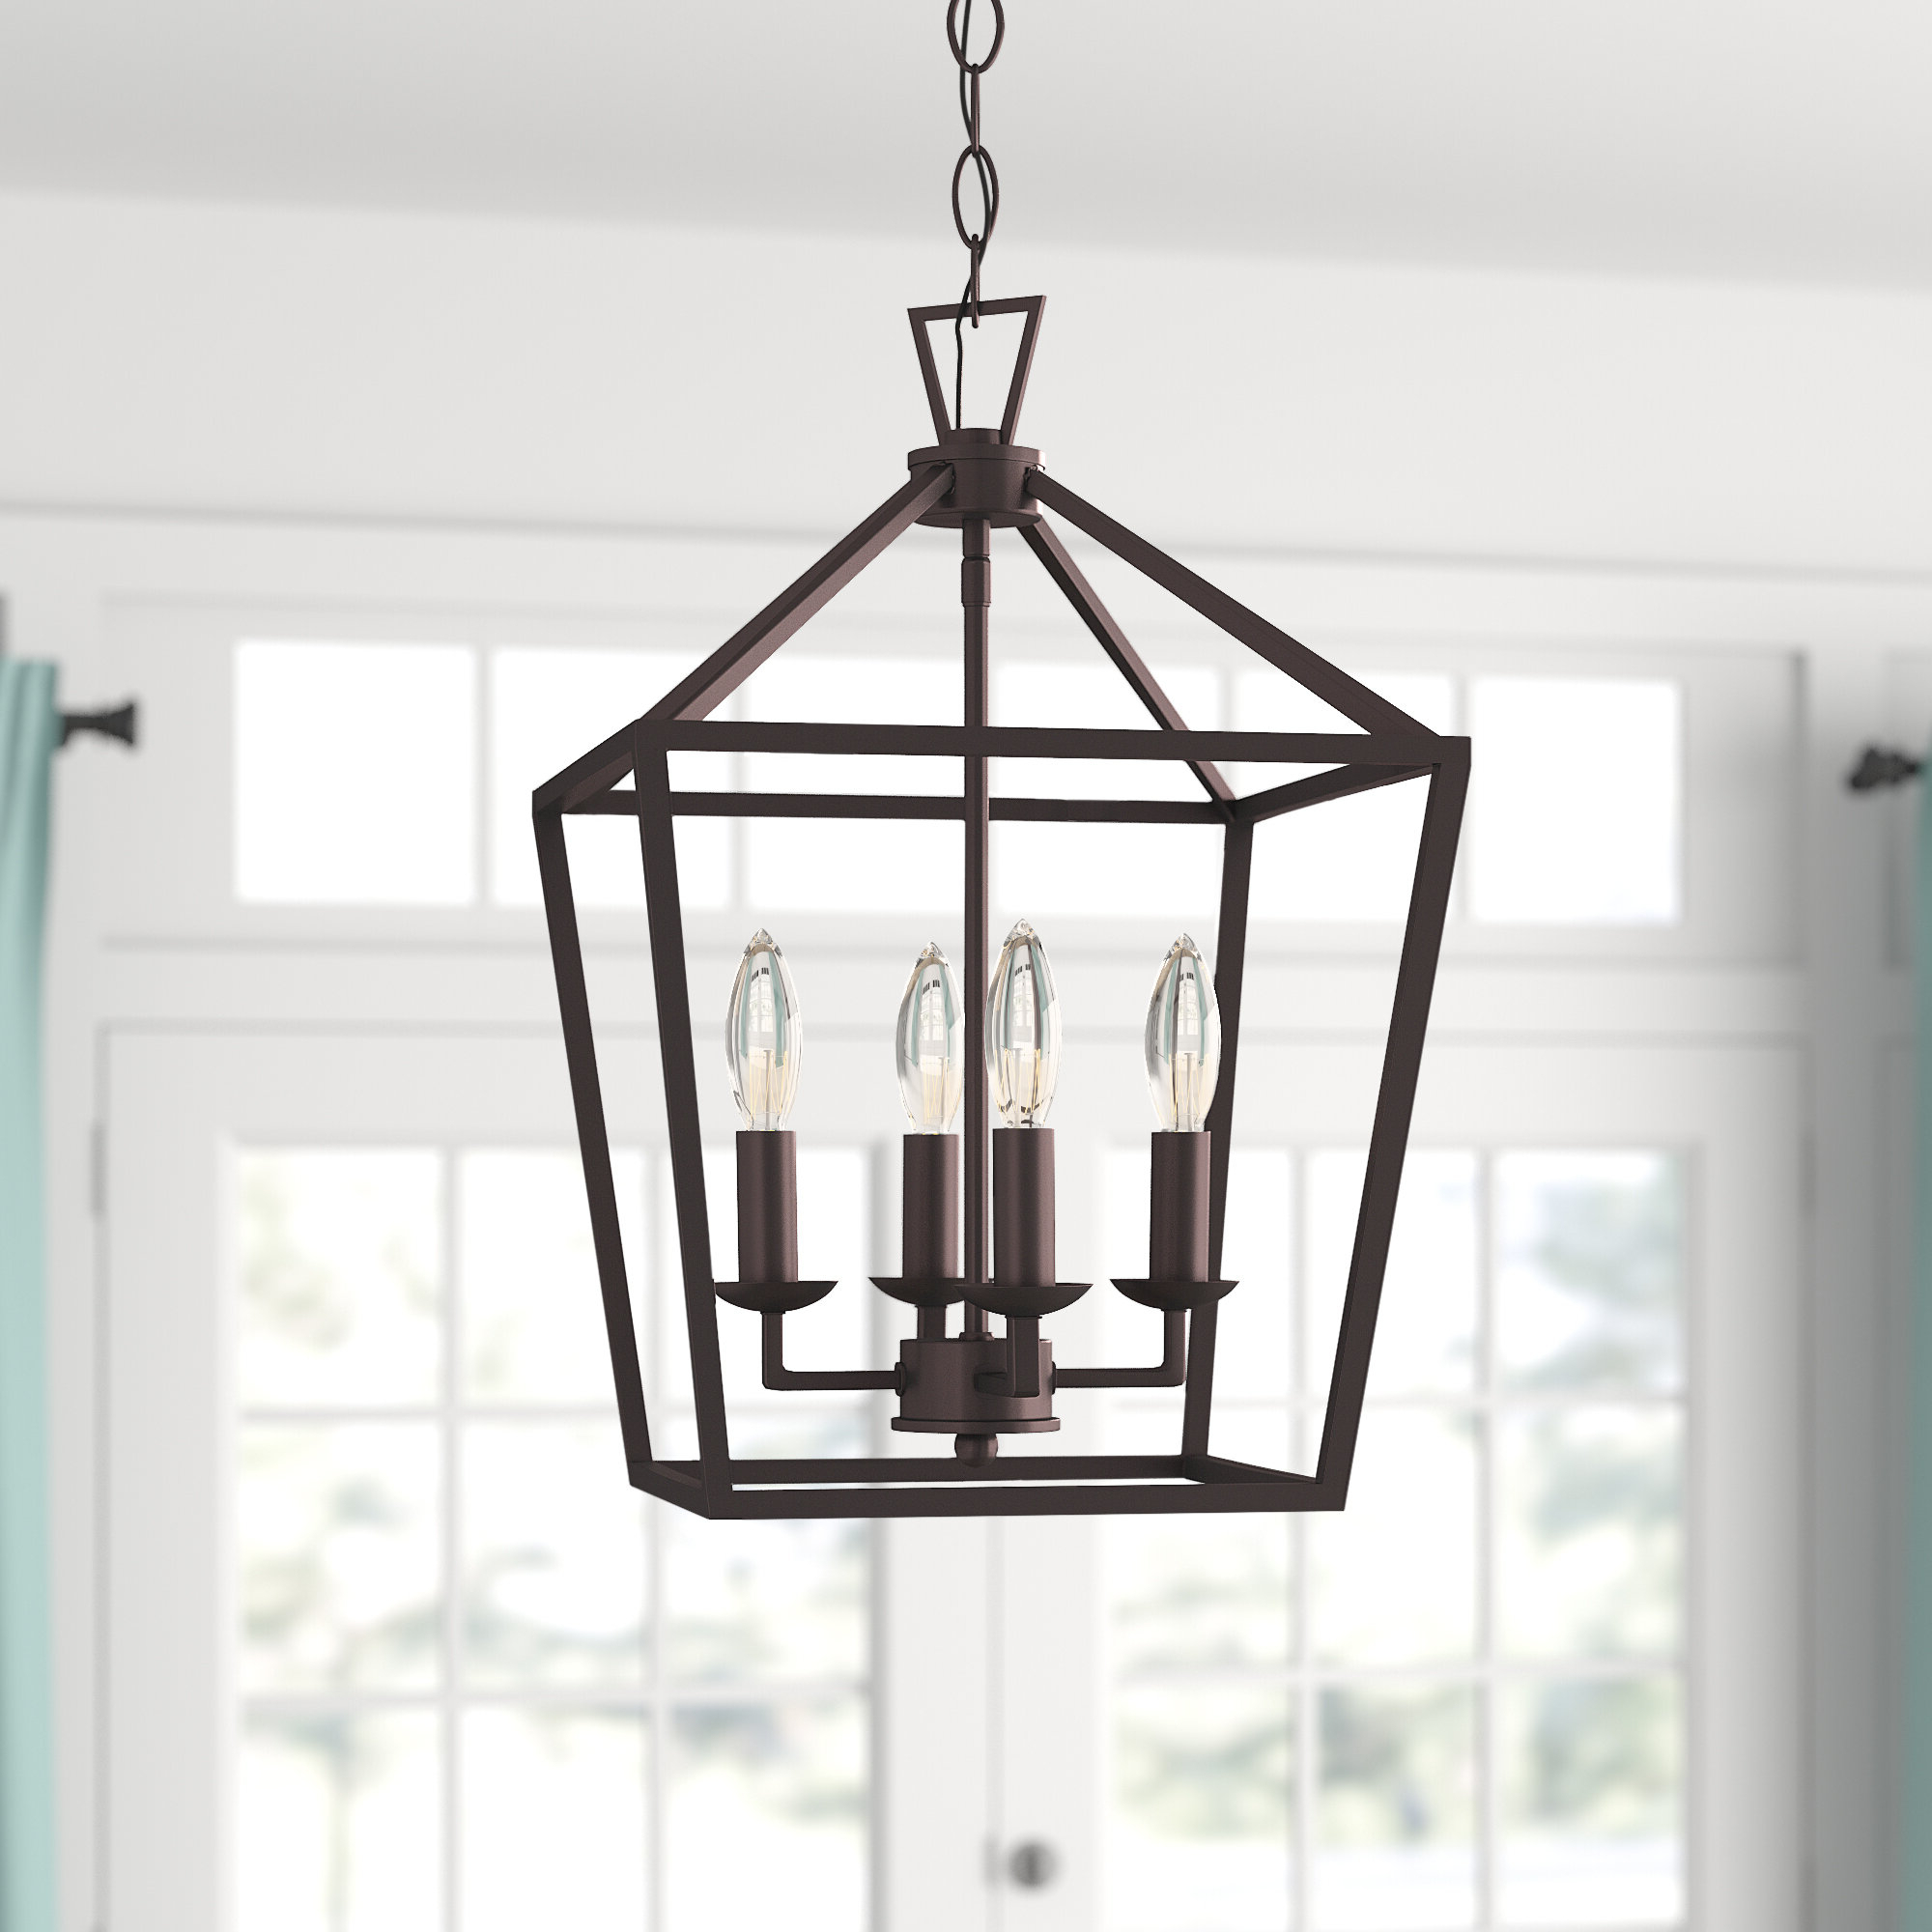 Carmen 4 Light Lantern Geometric Pendants Throughout Most Current Carmen 4 Light Lantern Geometric Pendant & Reviews (Gallery 2 of 20)